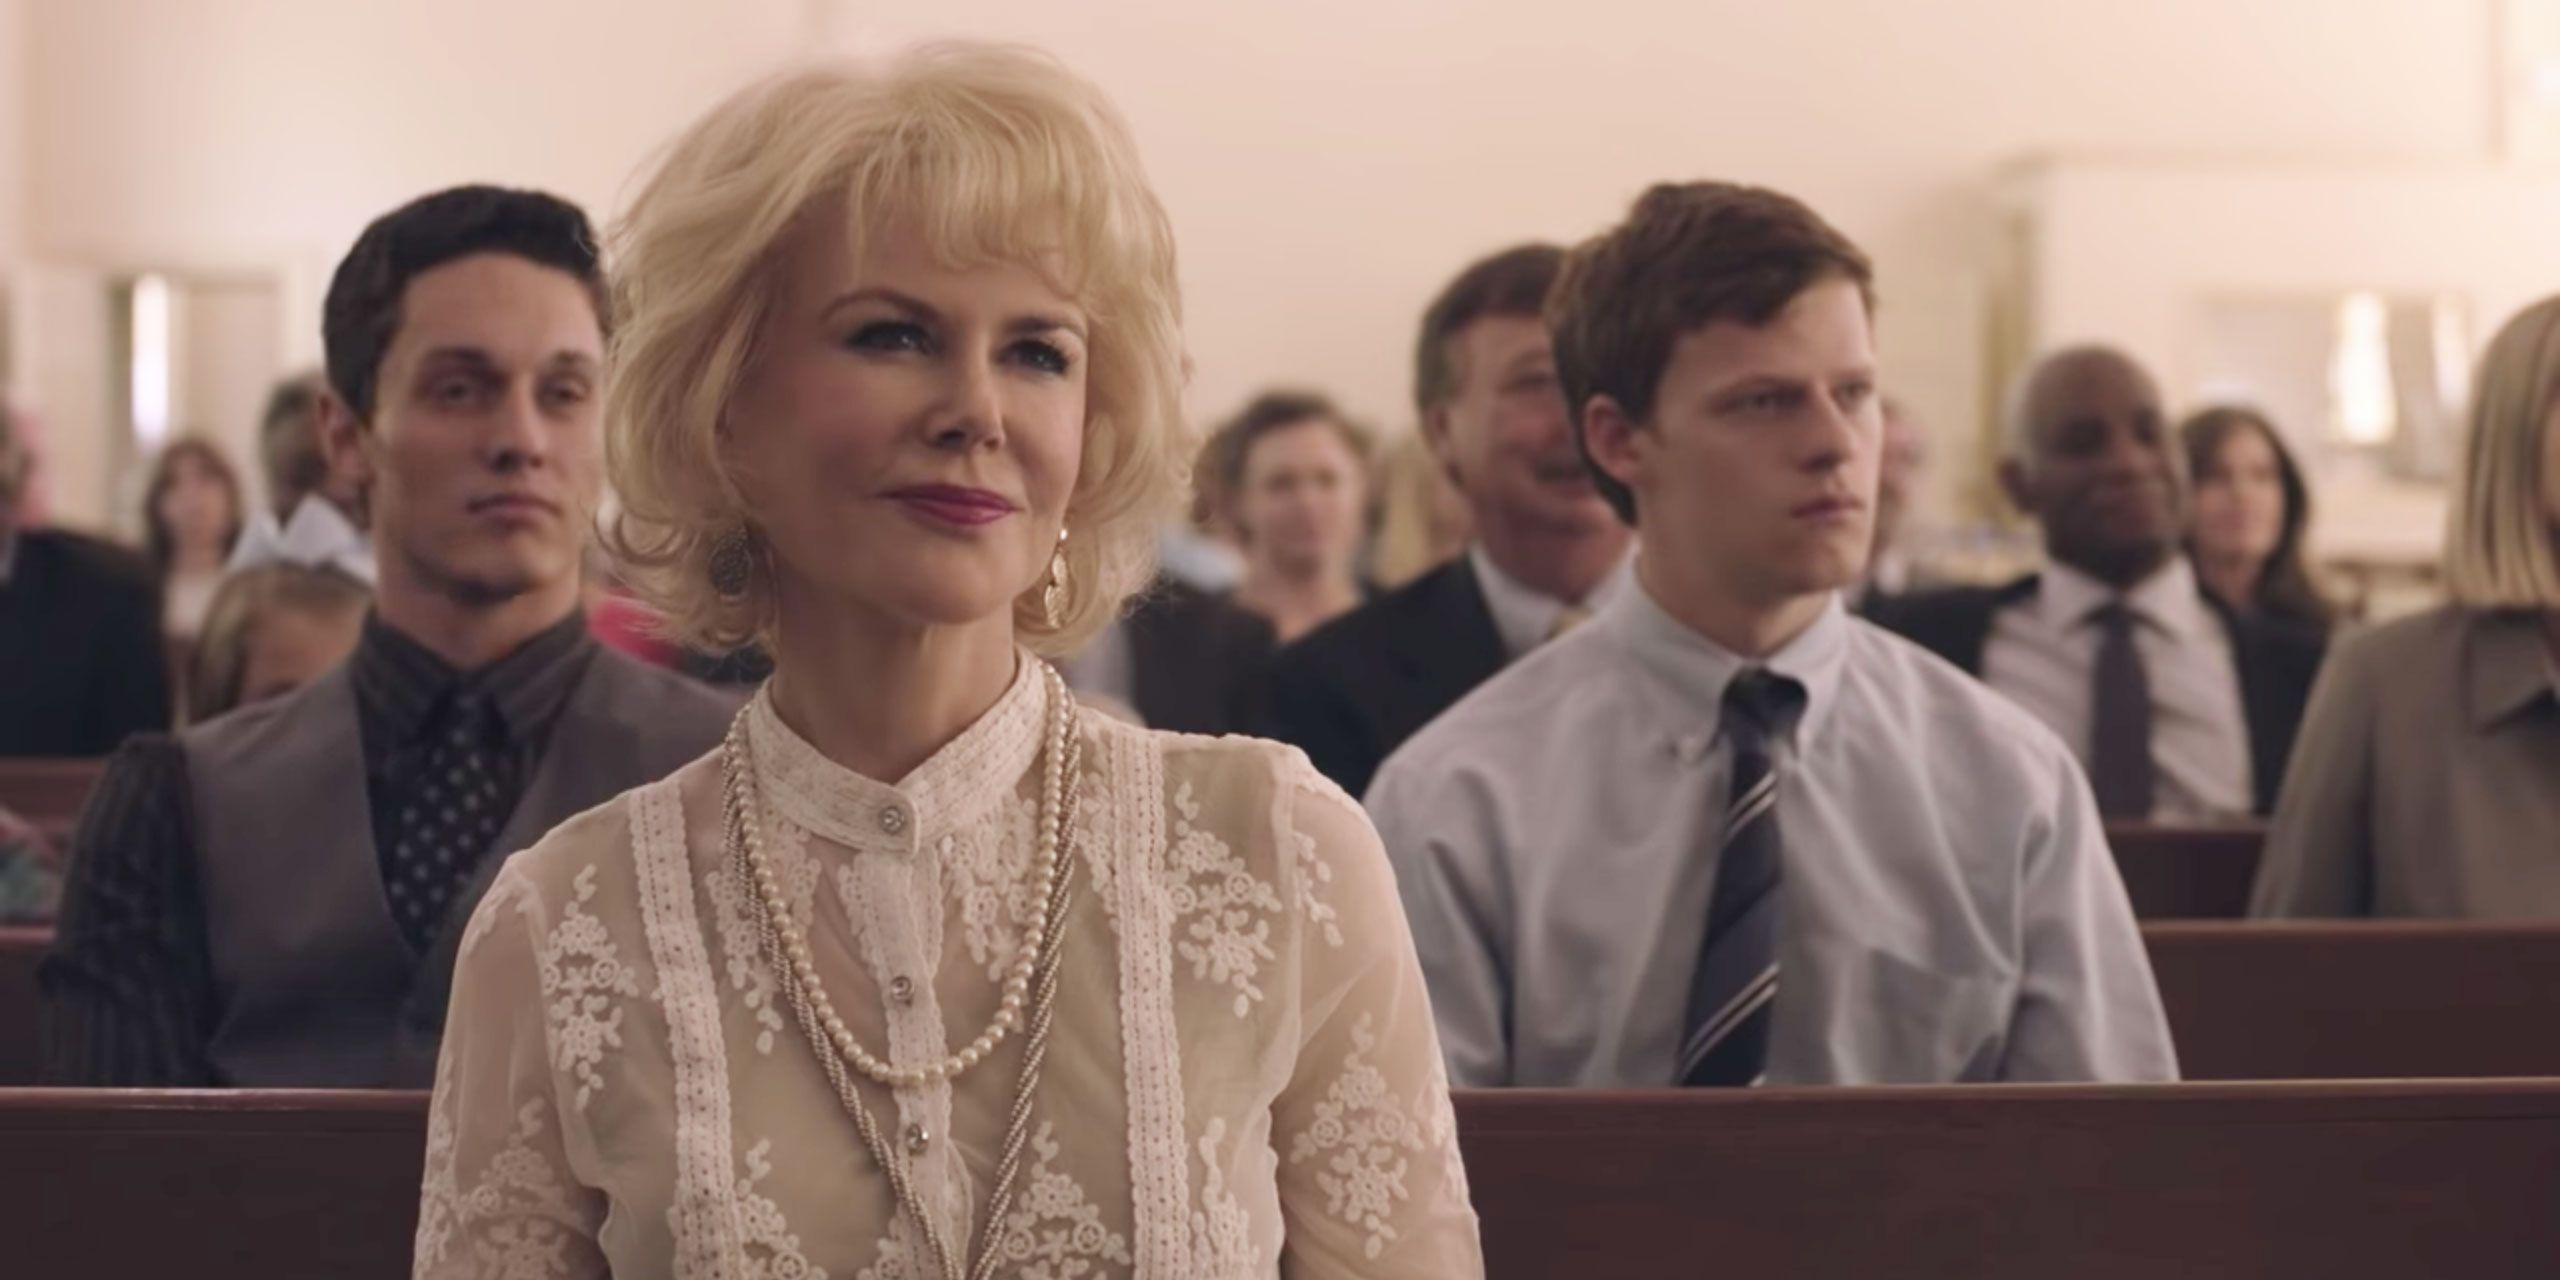 This New Trailer for the Movie 'Boy Erased' Shows the Dangers of Gay Conversion Therapy